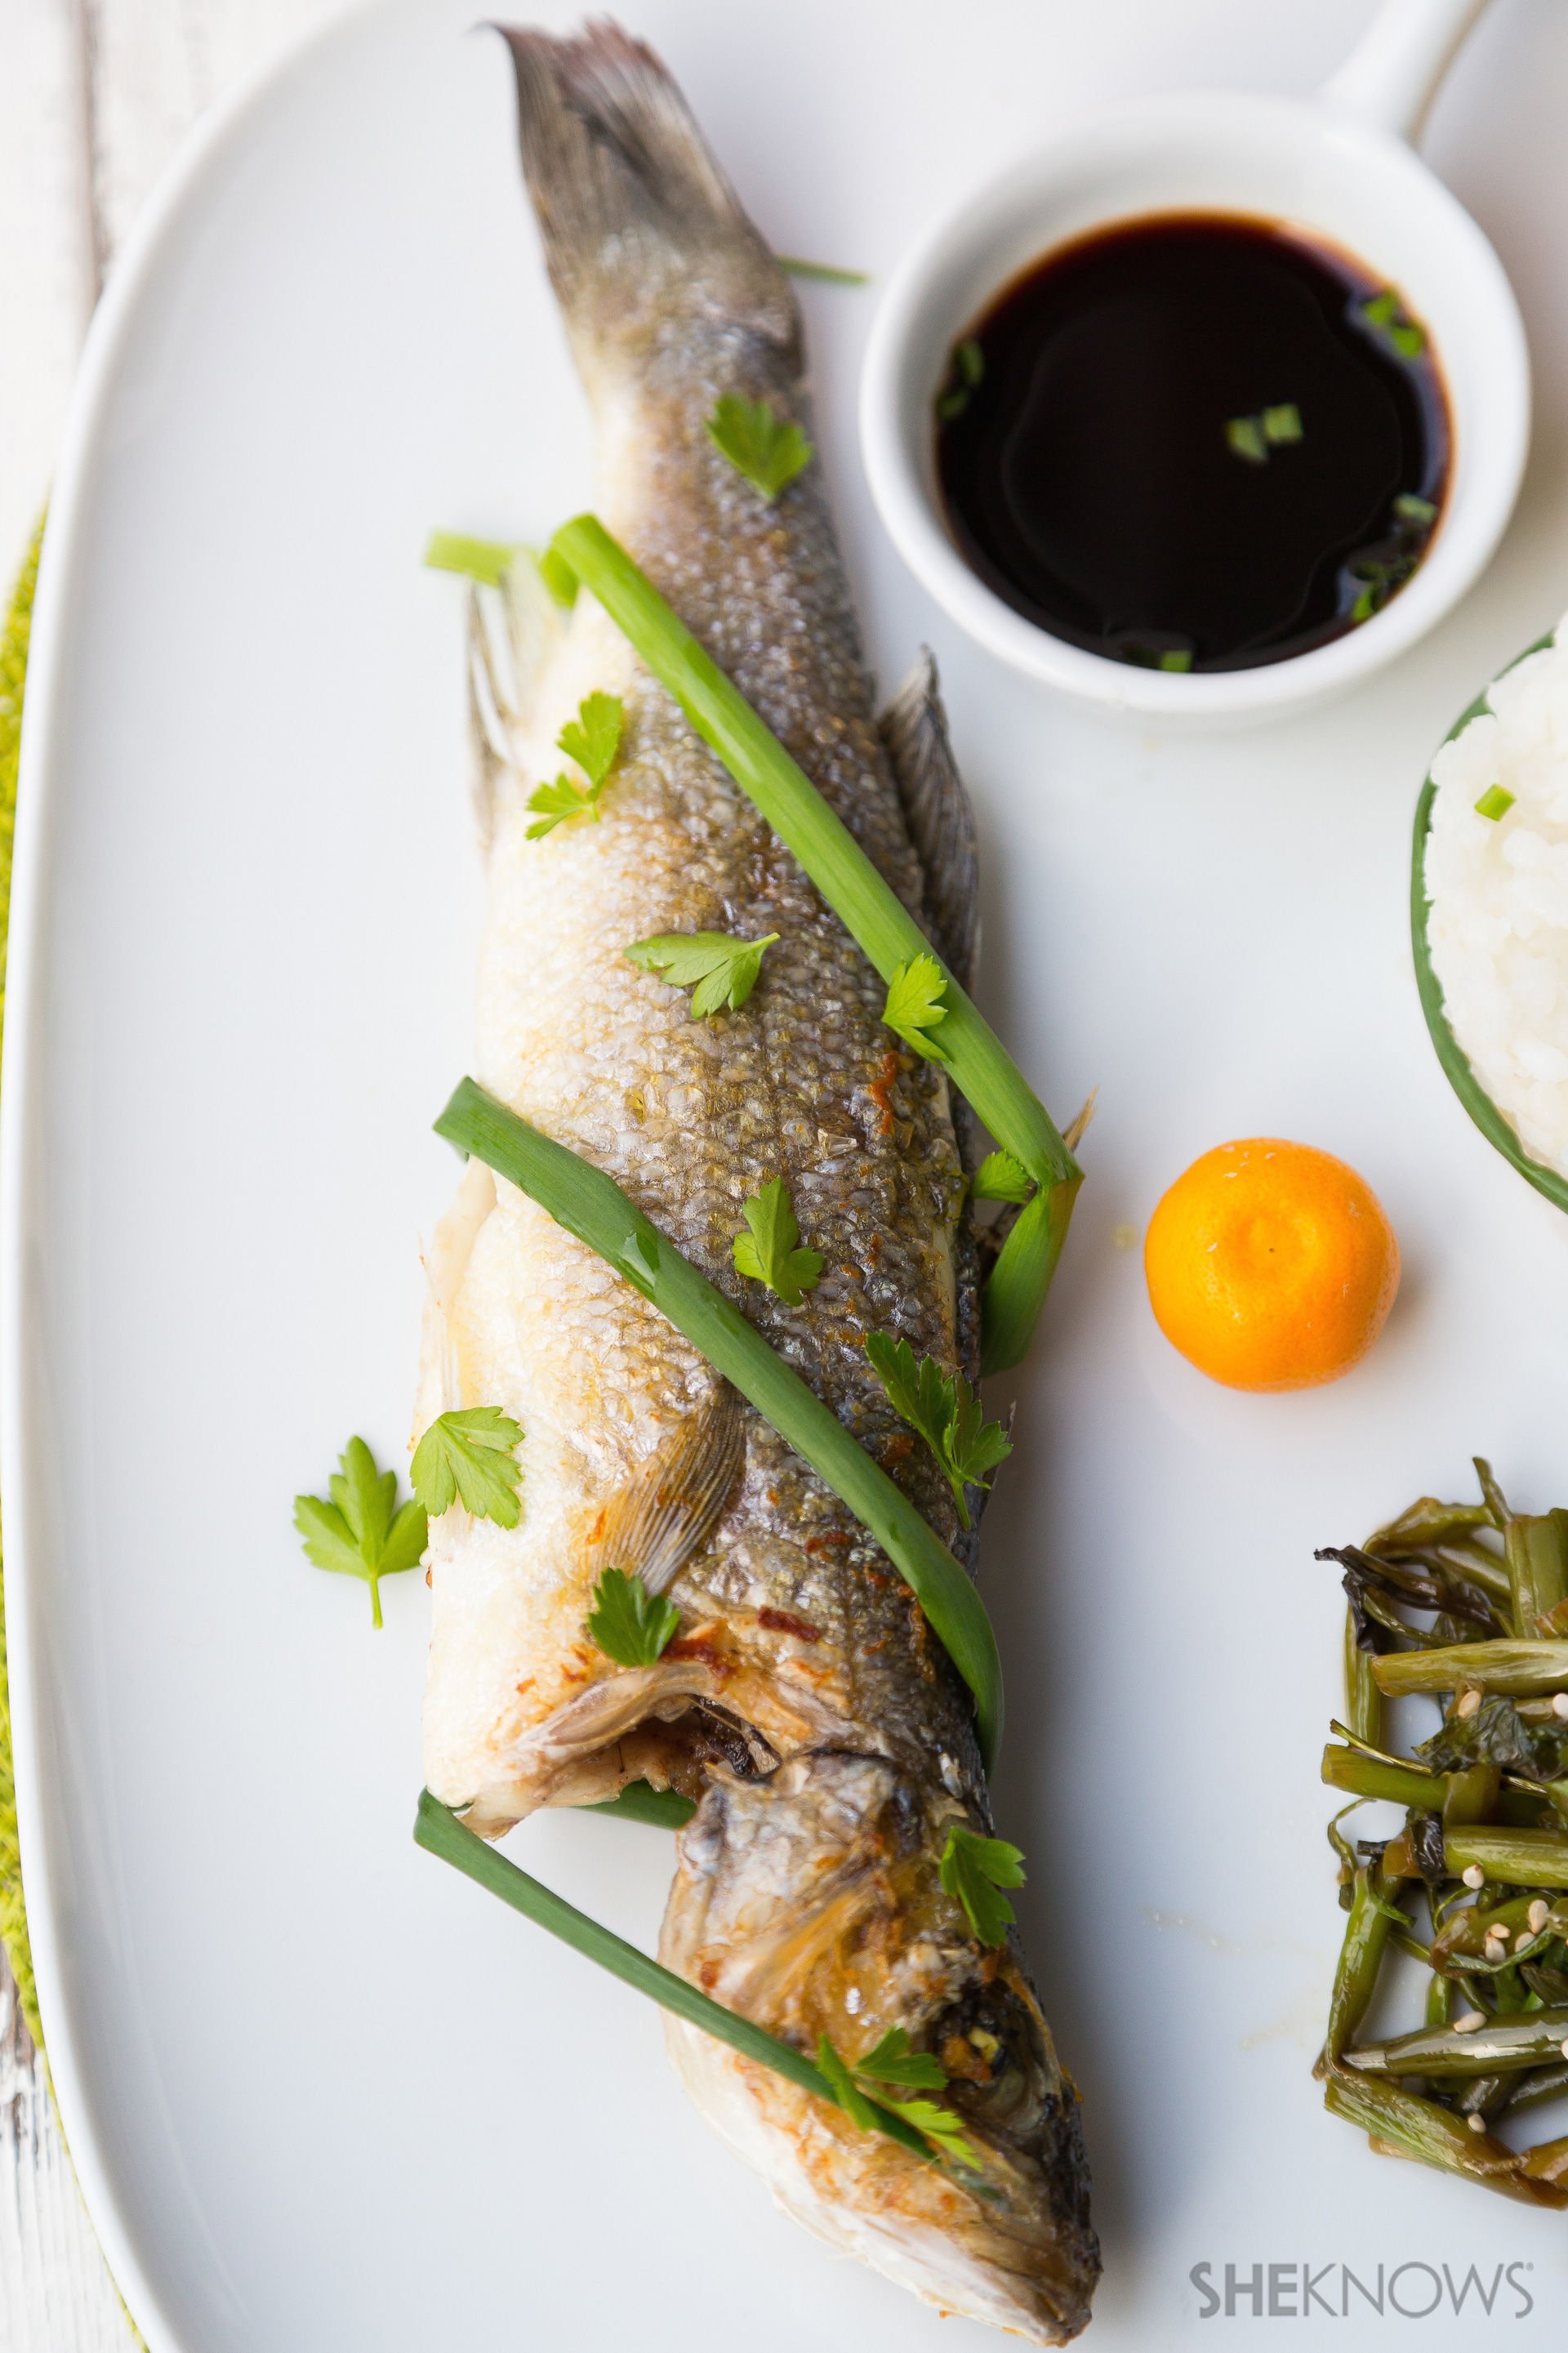 Fried whole fish recipe